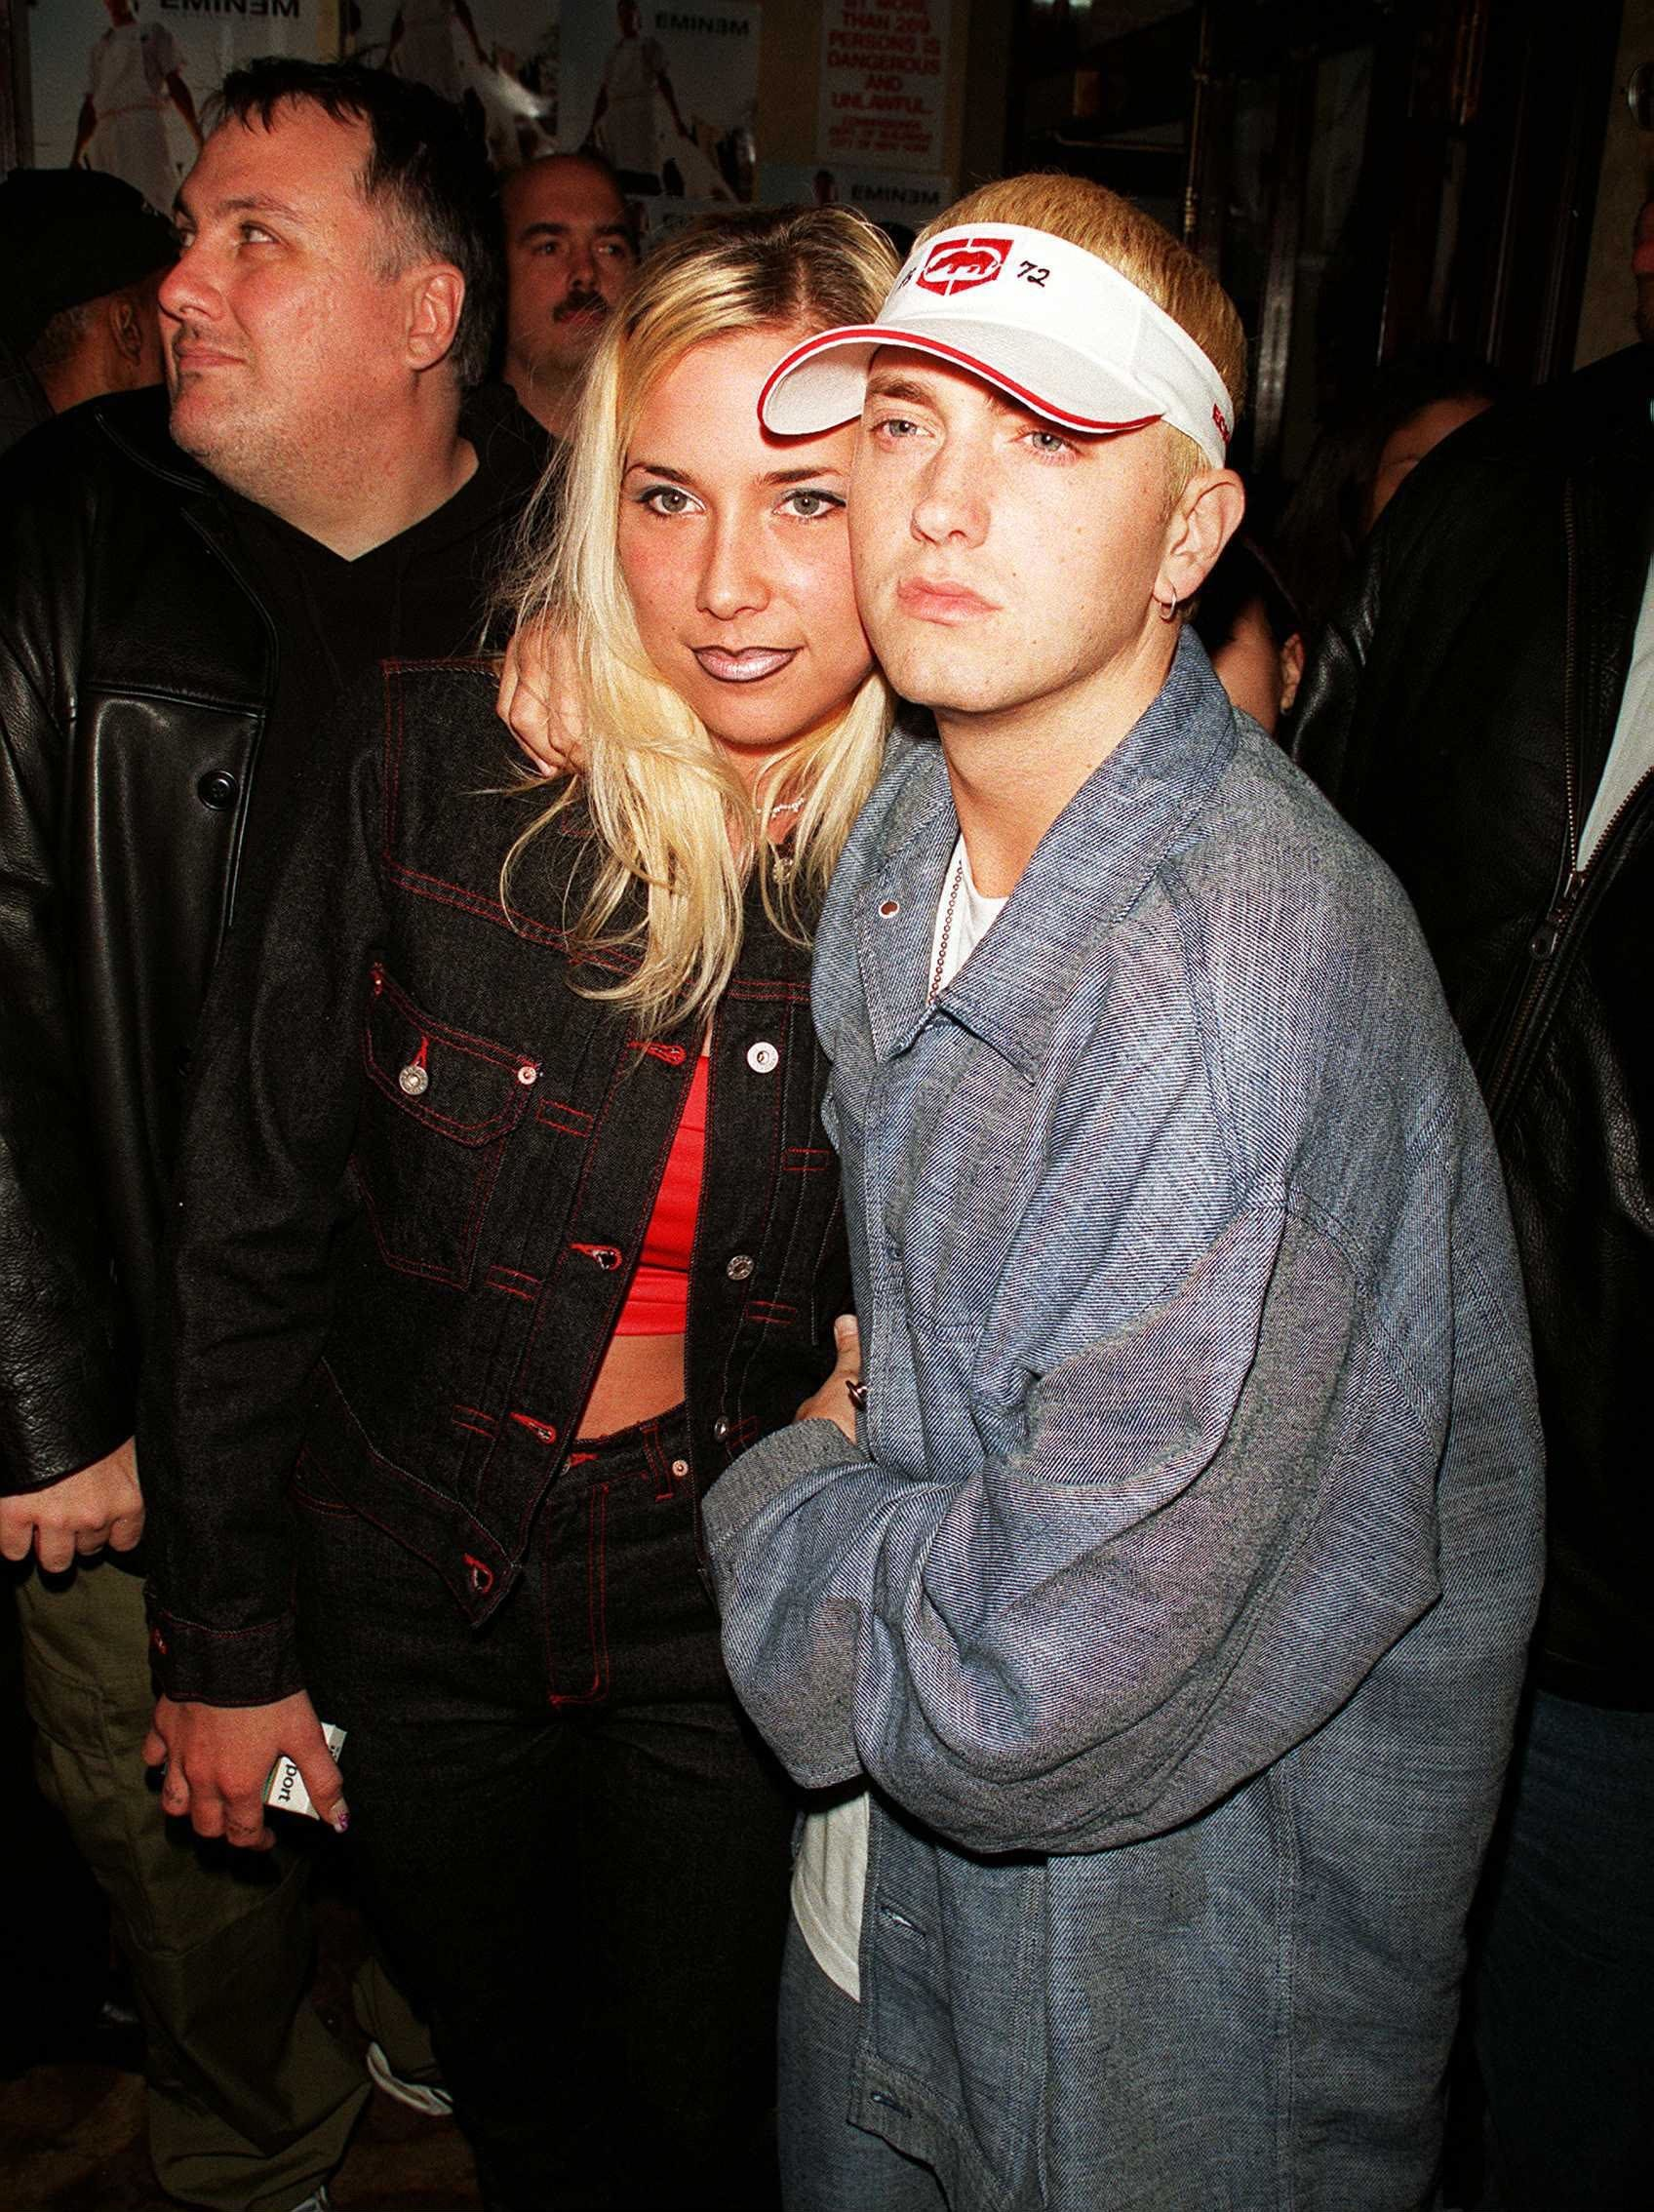 Rapper Eminem and wife Kim Mathers at his record release party.